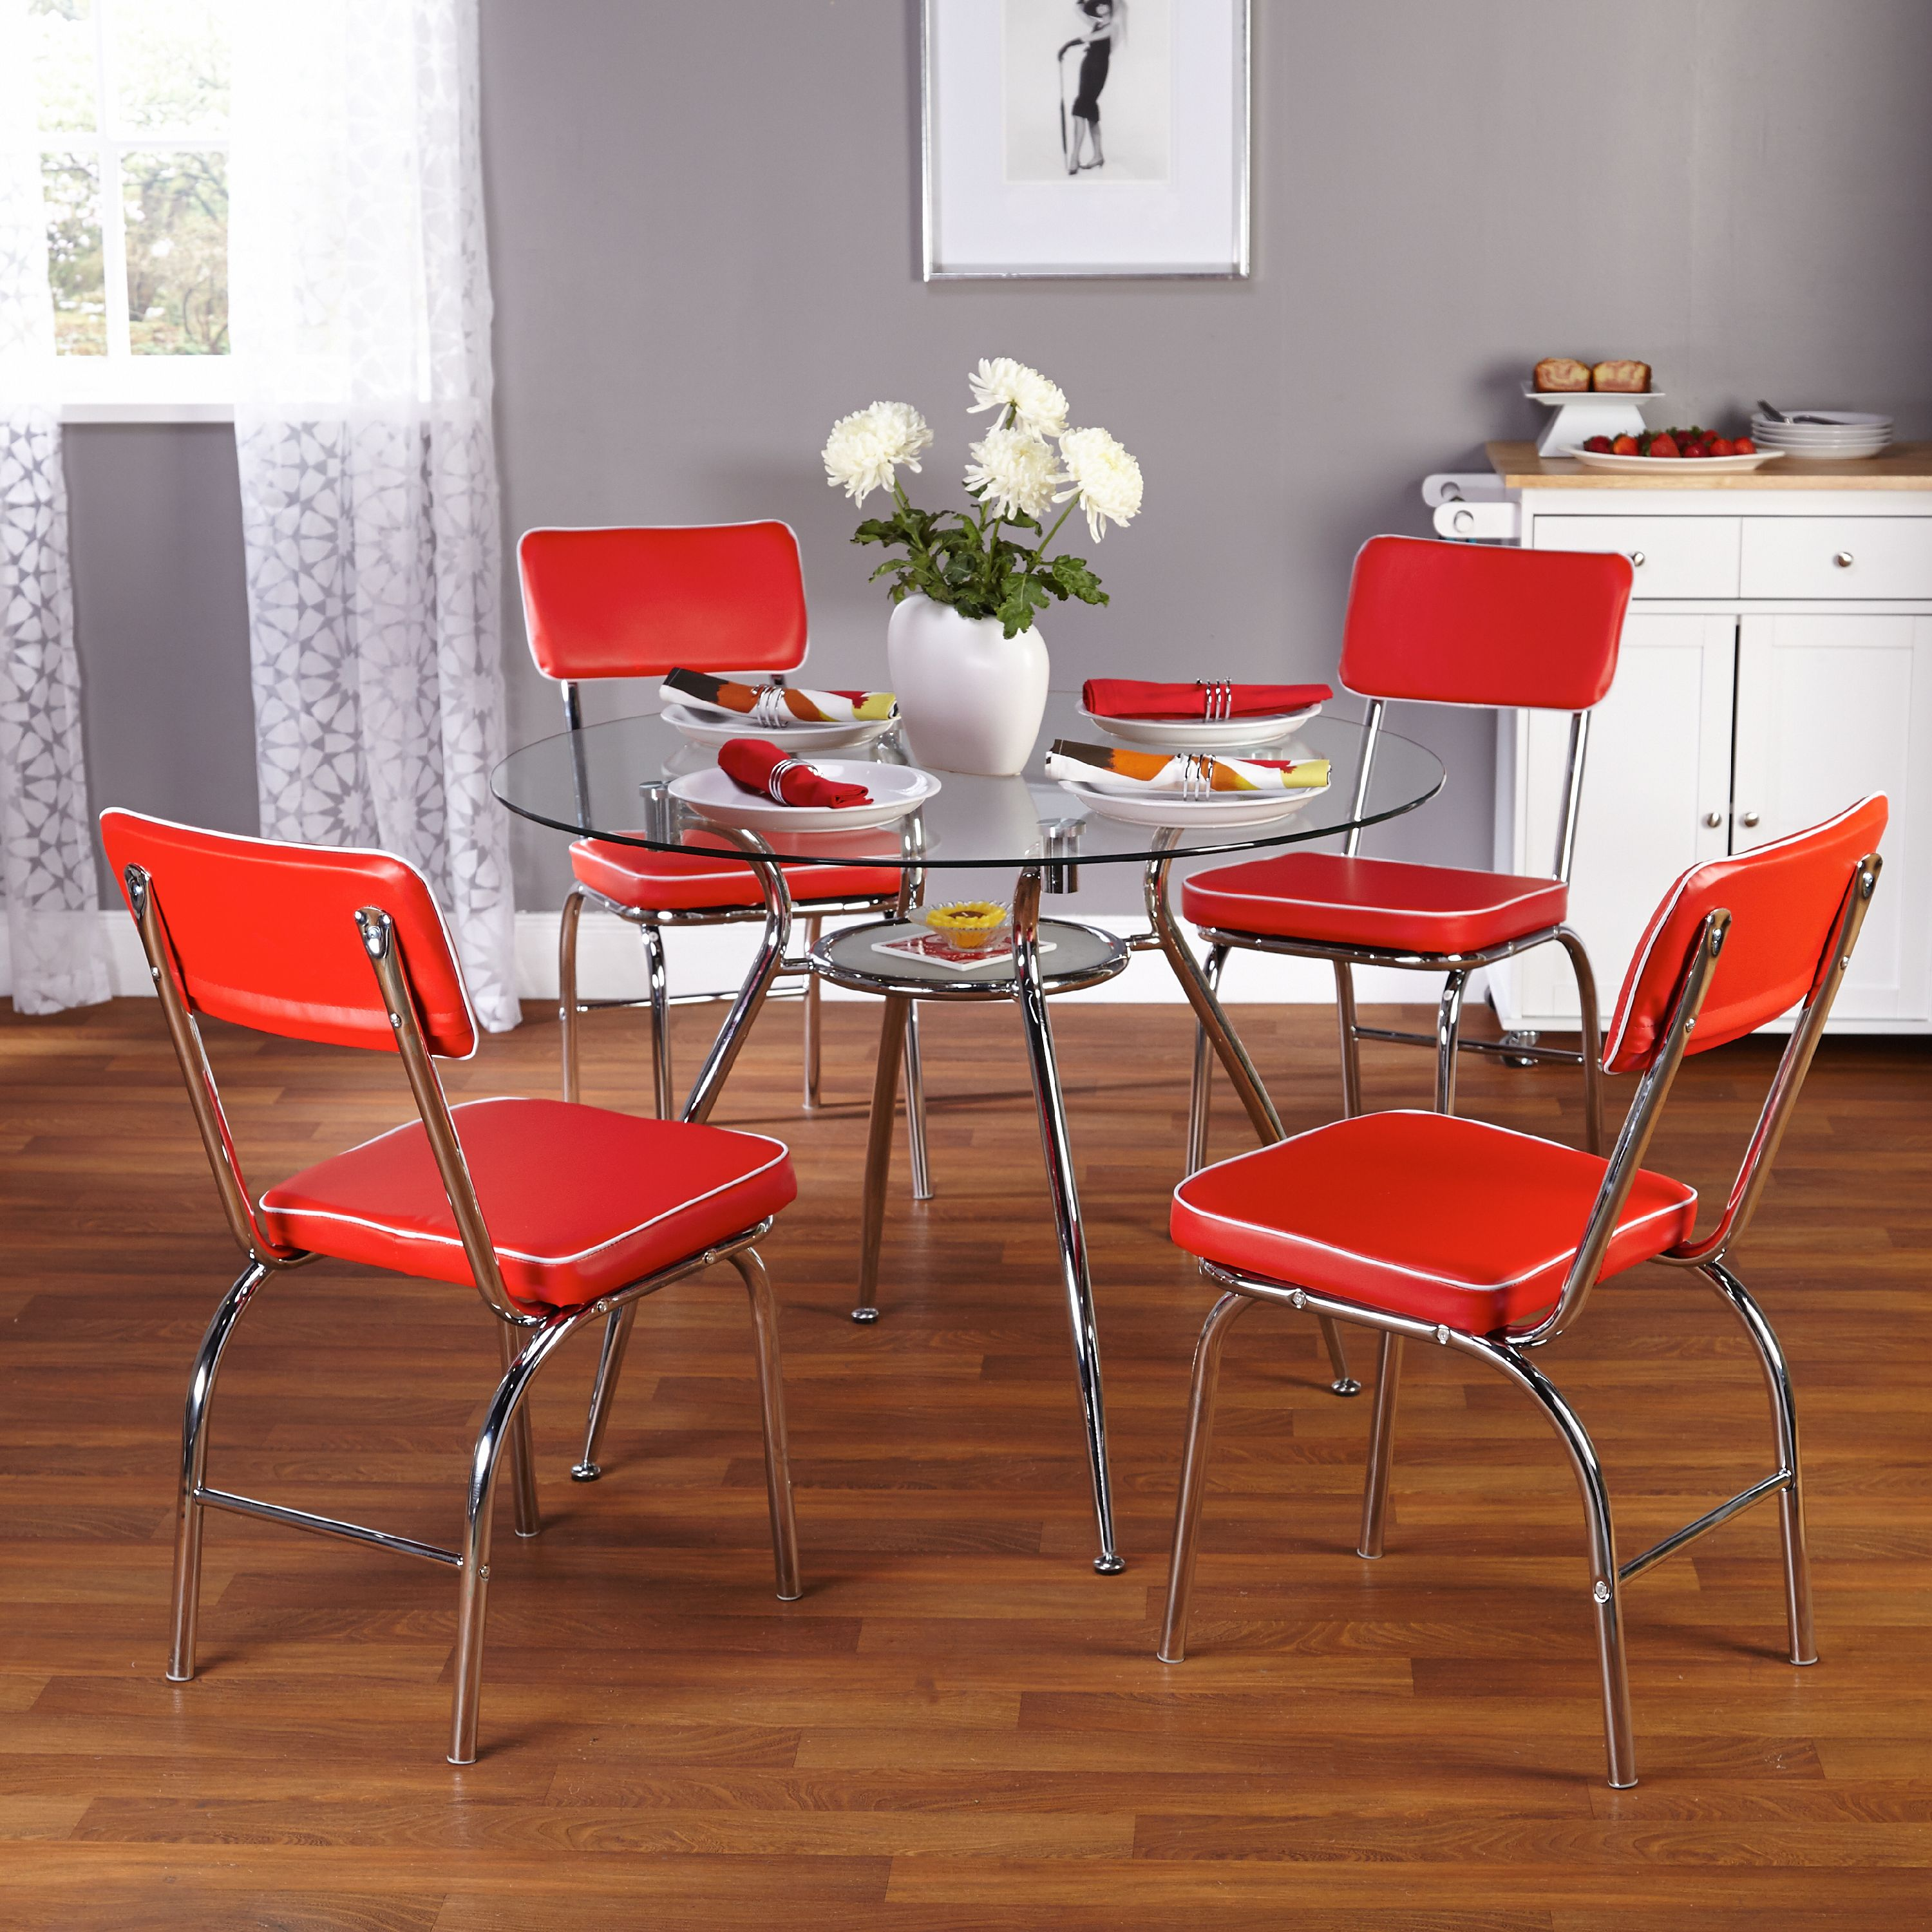 Mabel Retro 5-Piece Dining Set, Multiple Colors